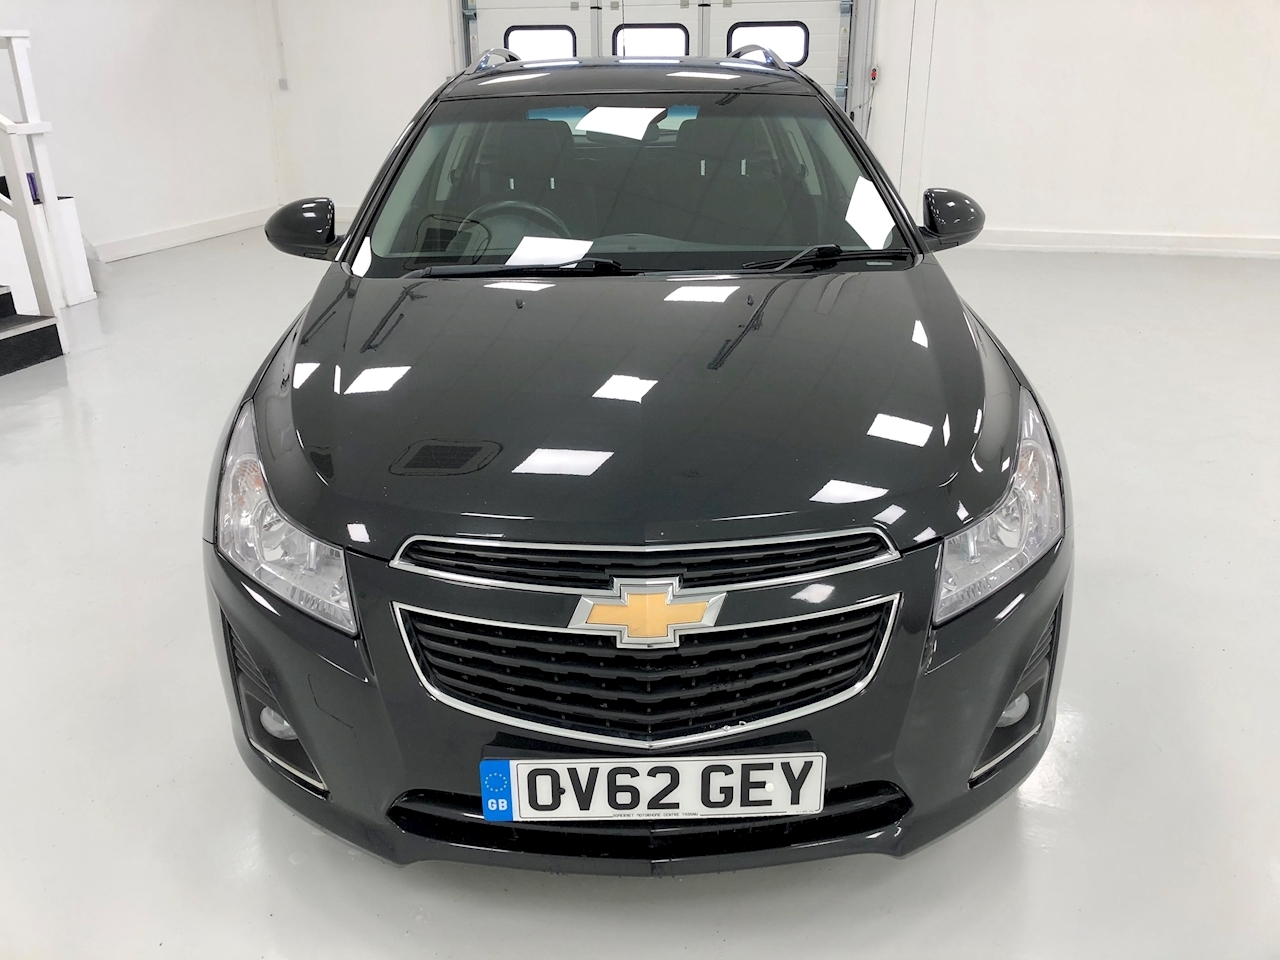 Chevrolet Cruze Vcdi Lt Hatchback 1.7 Manual Diesel